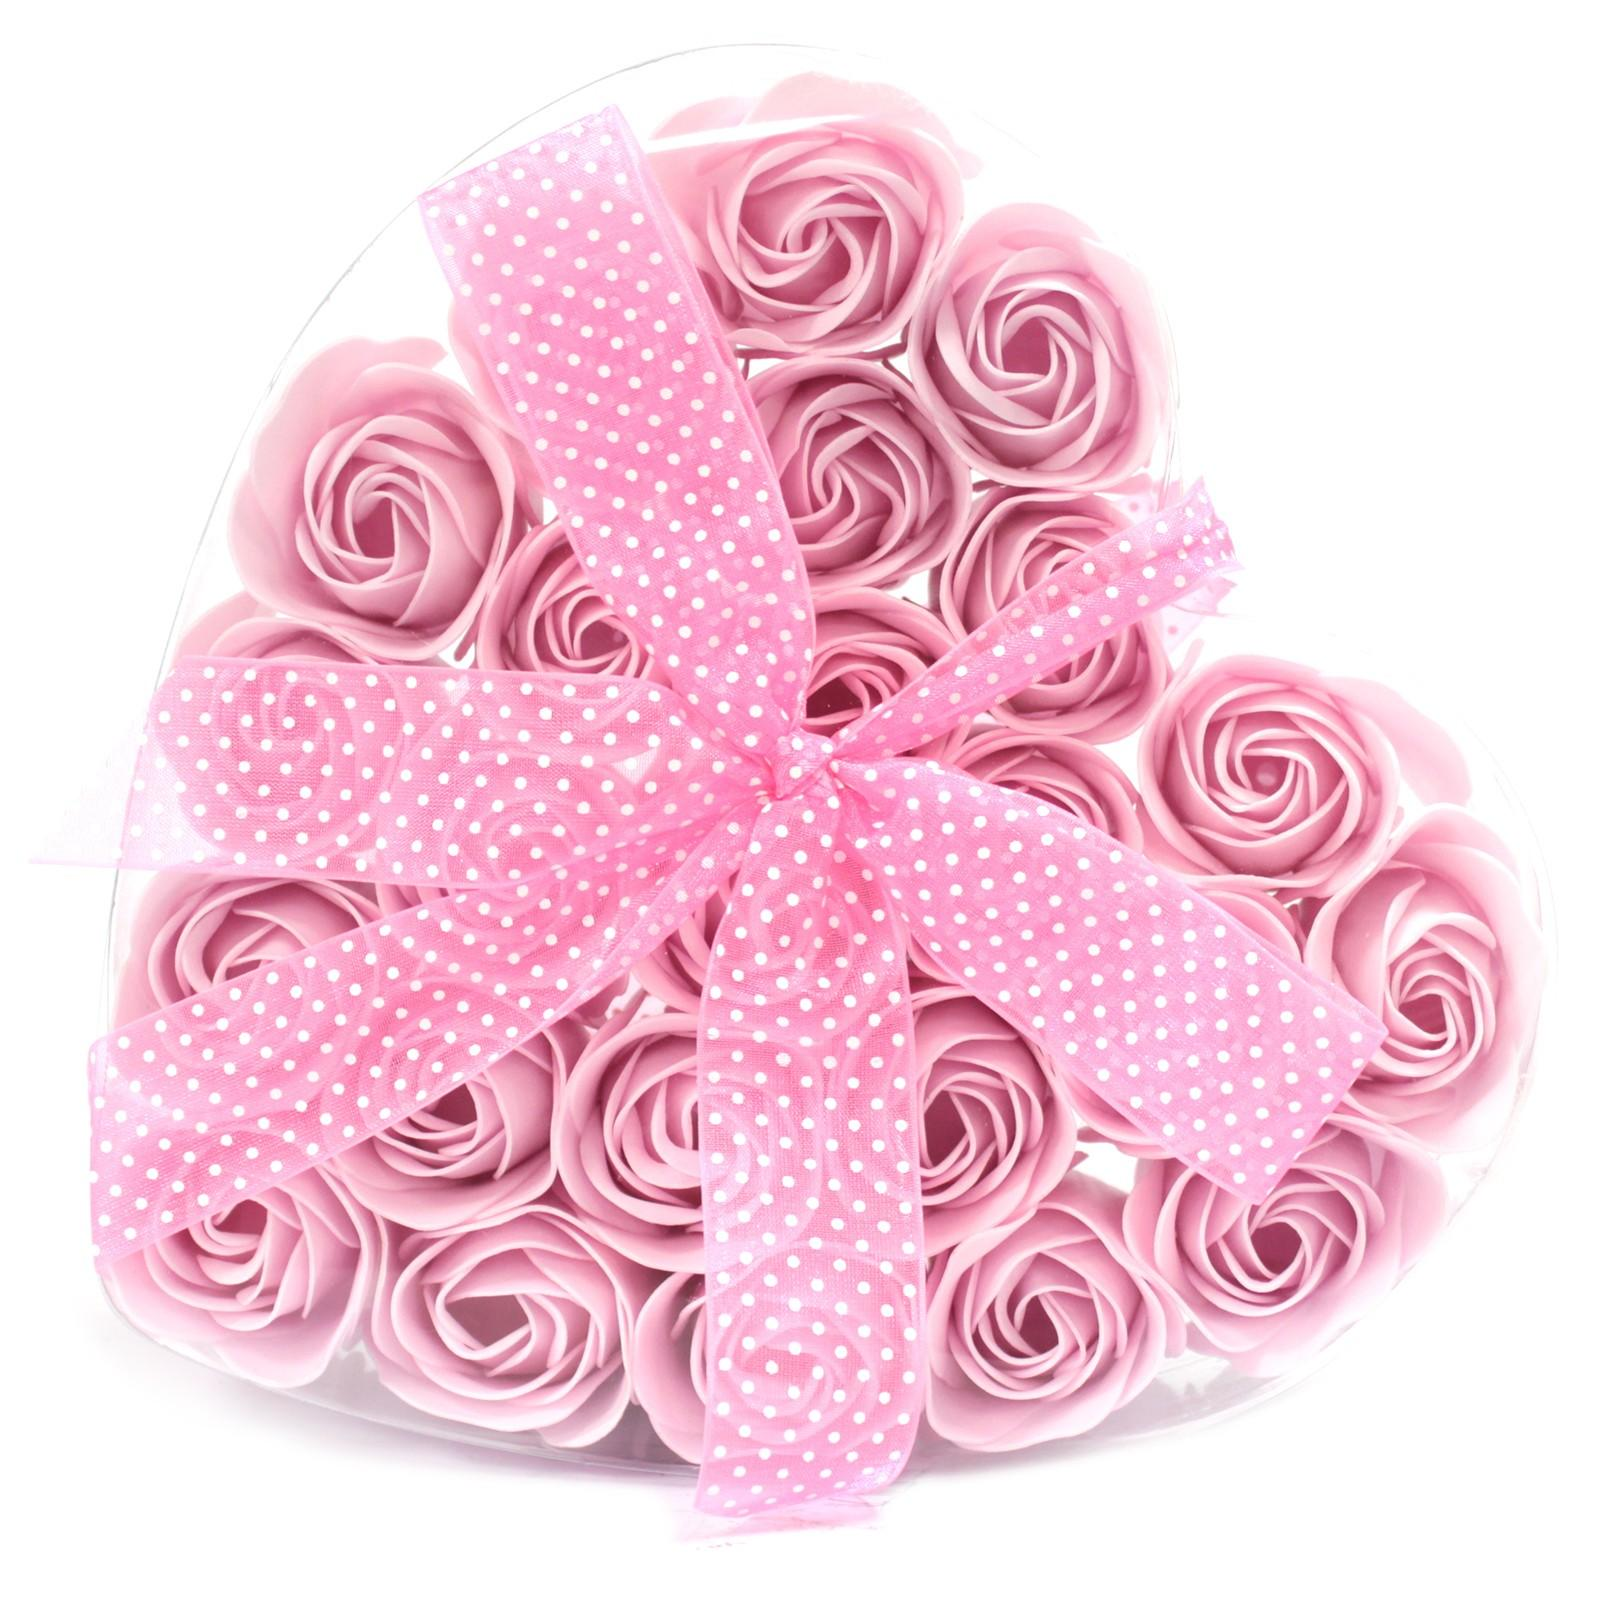 Pink confetti soap rose gift box